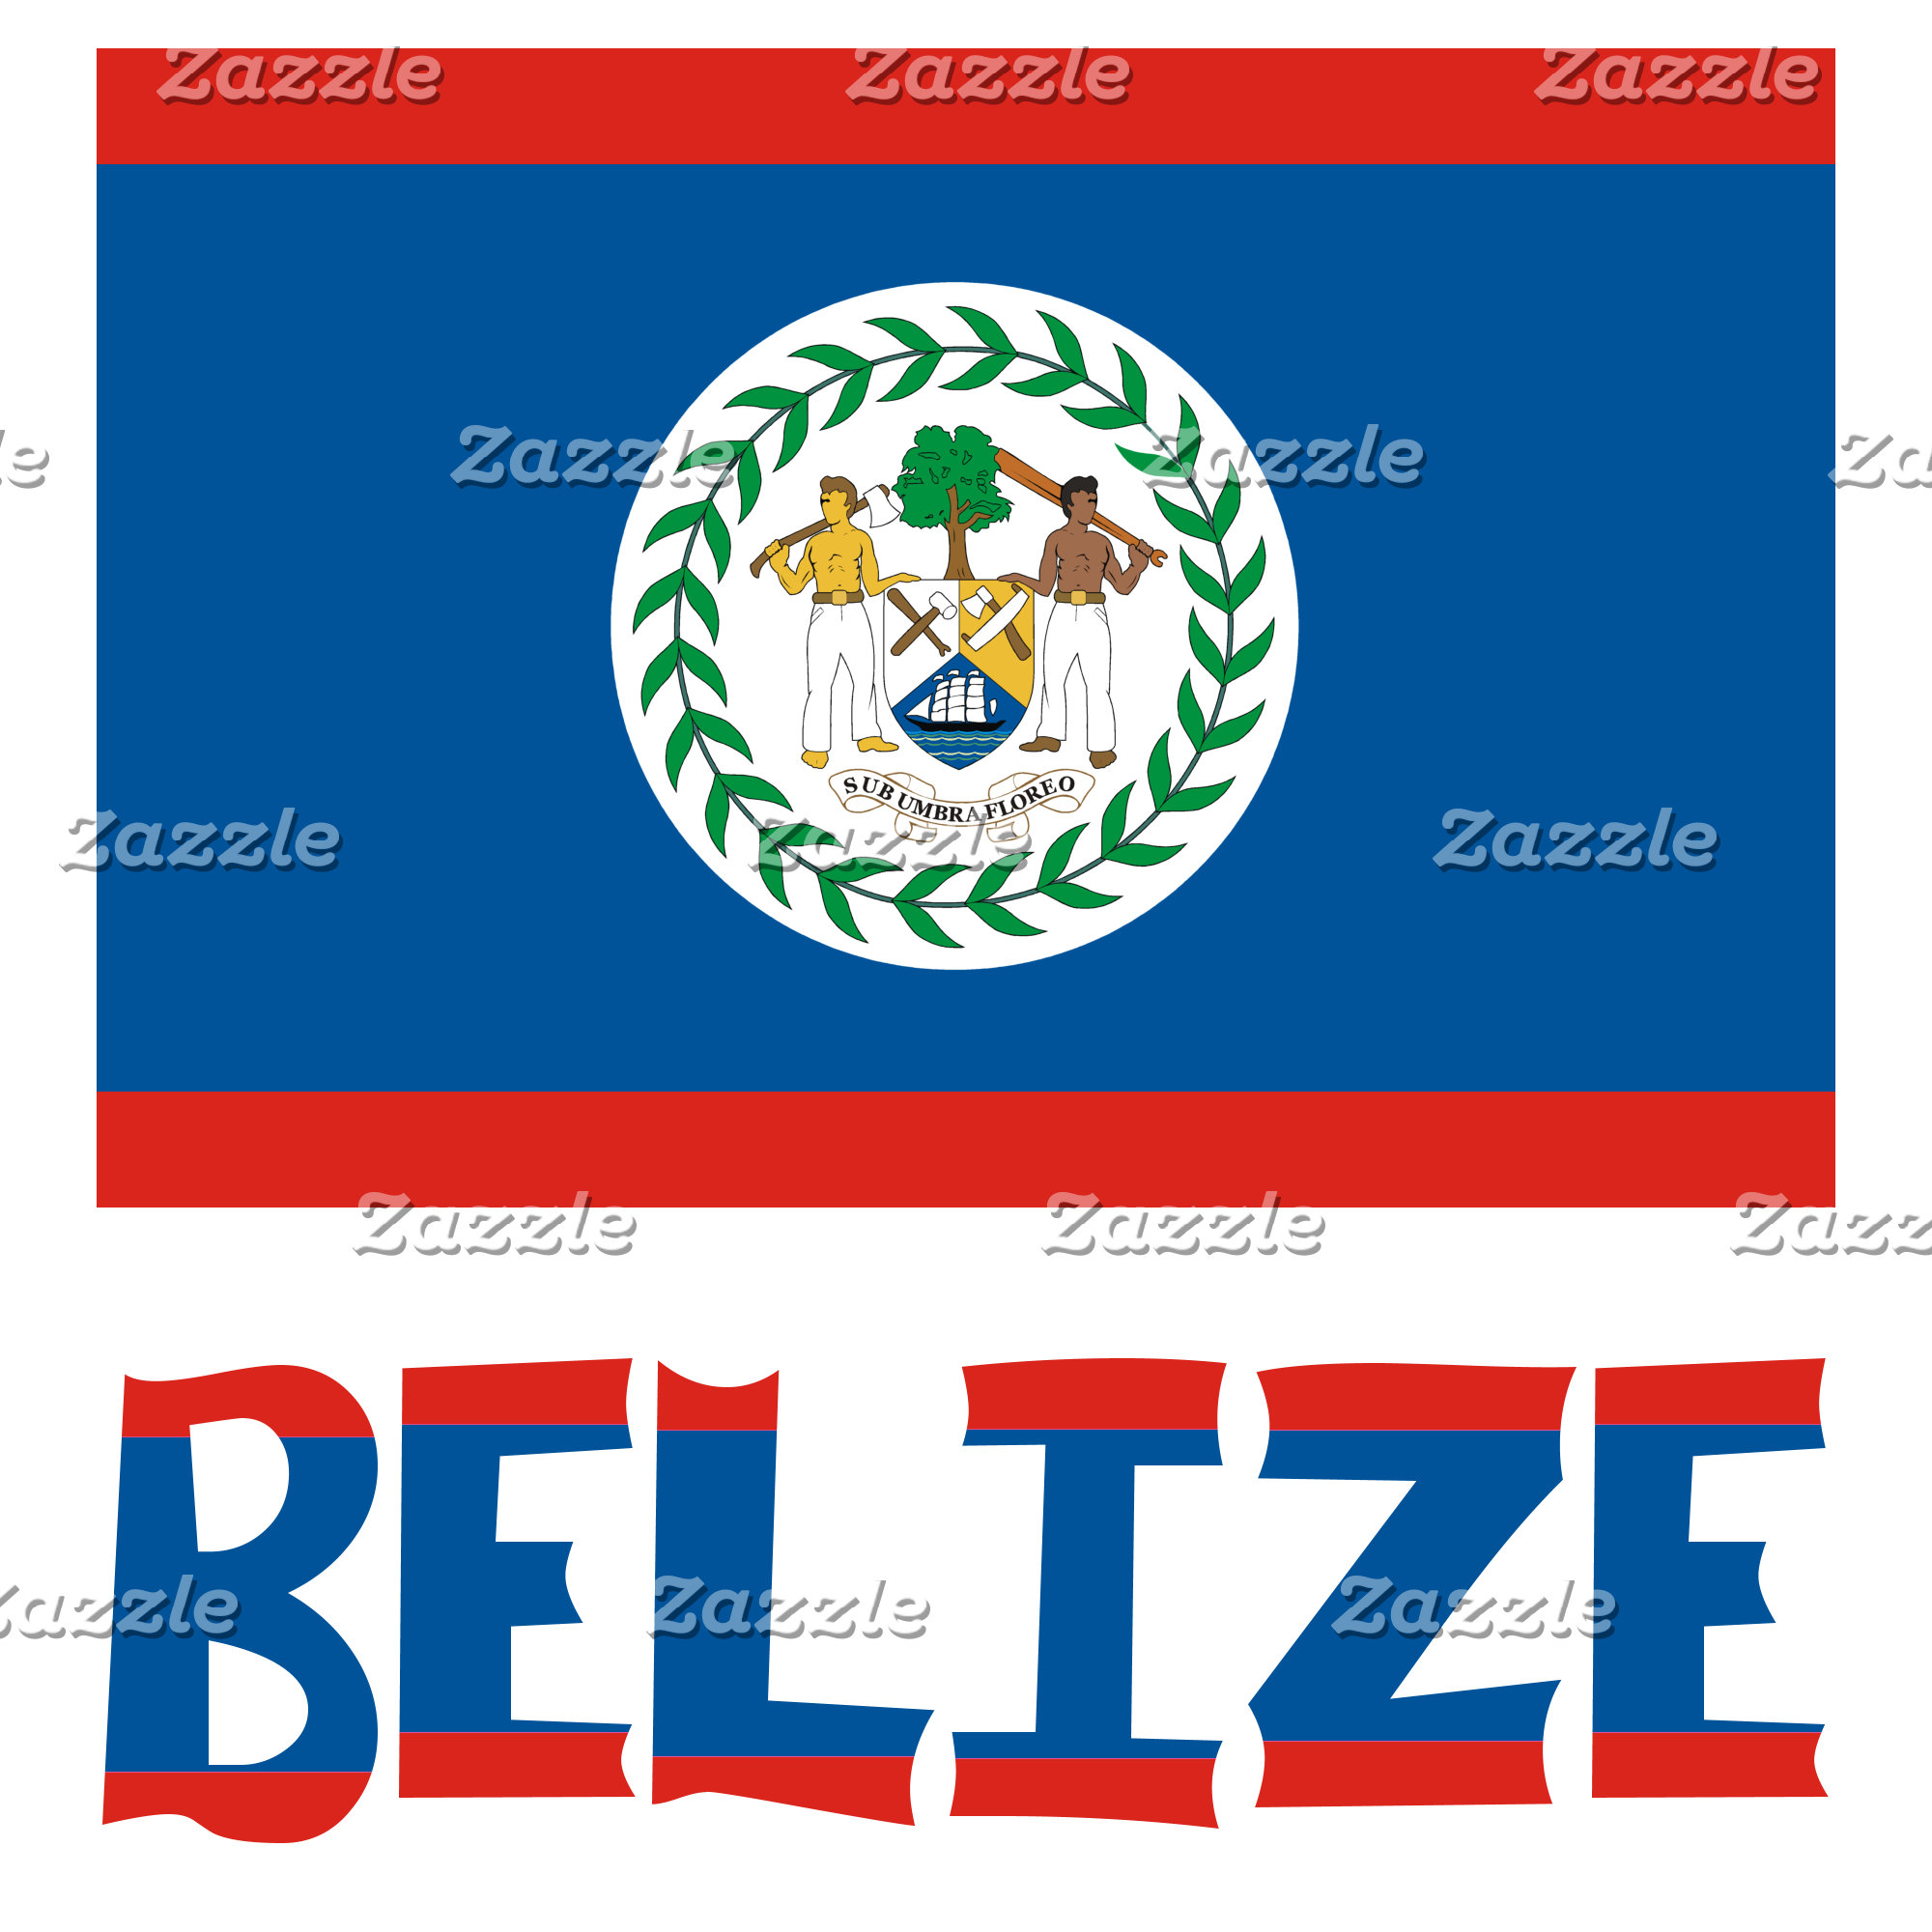 Belizean Flag and Belize